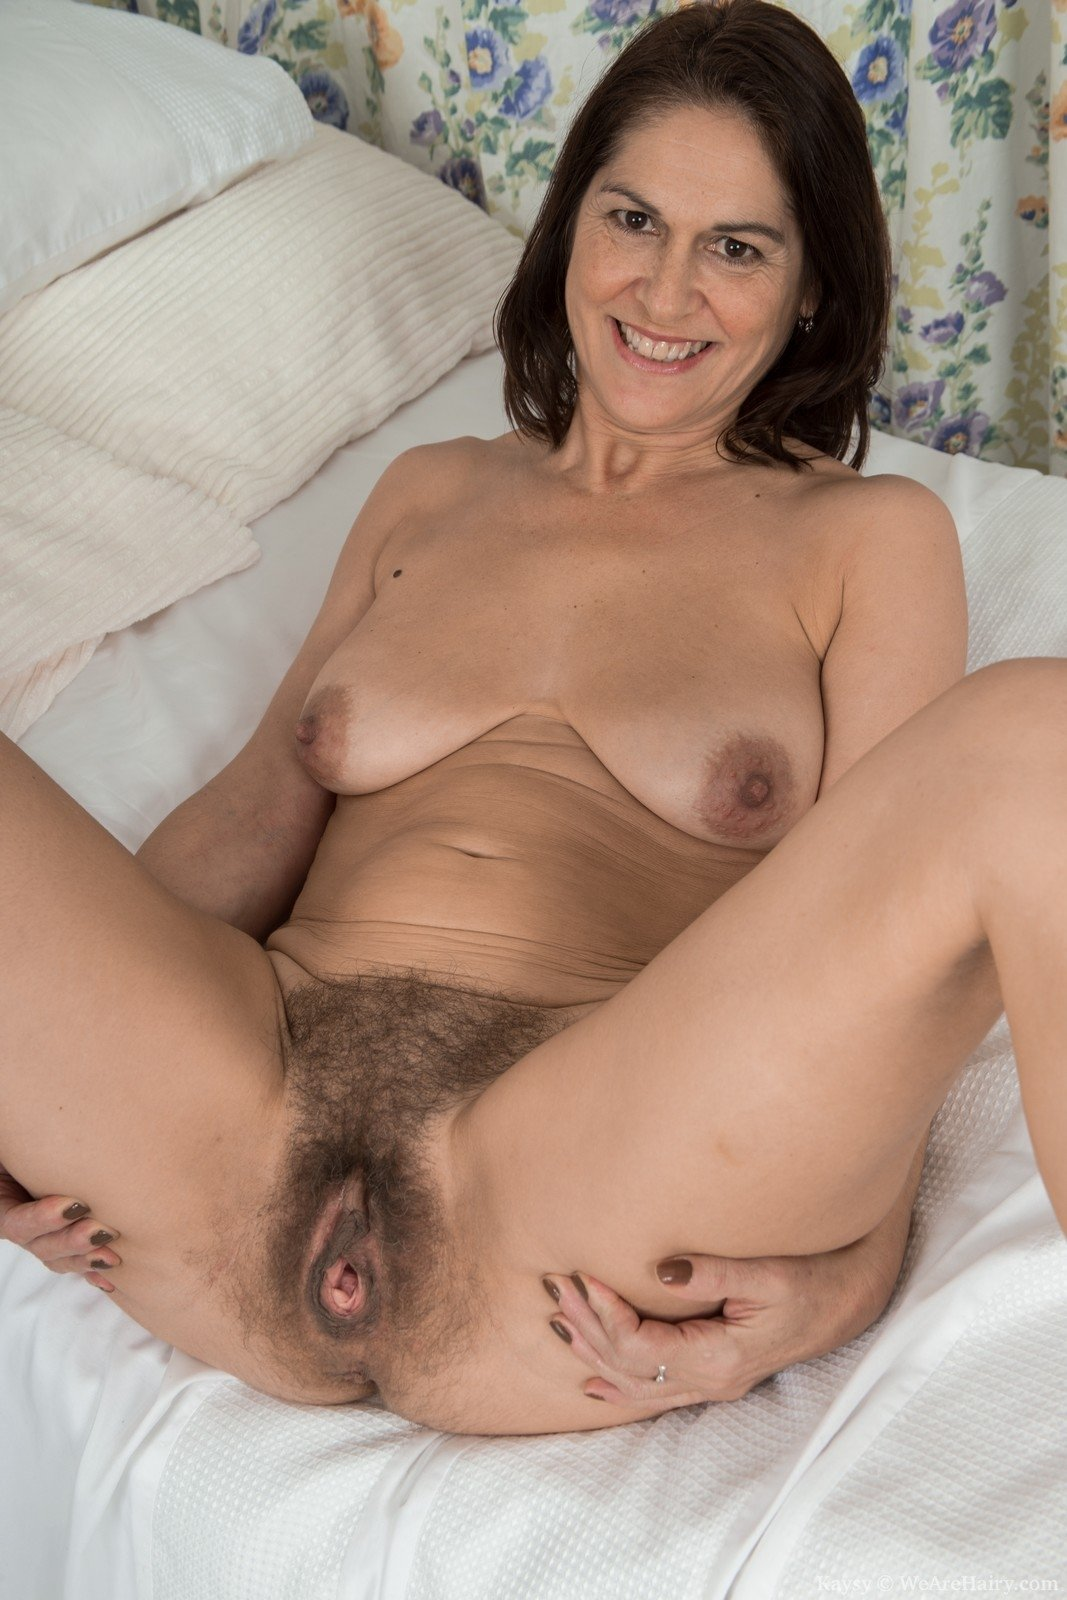 Lex steele and milf #8